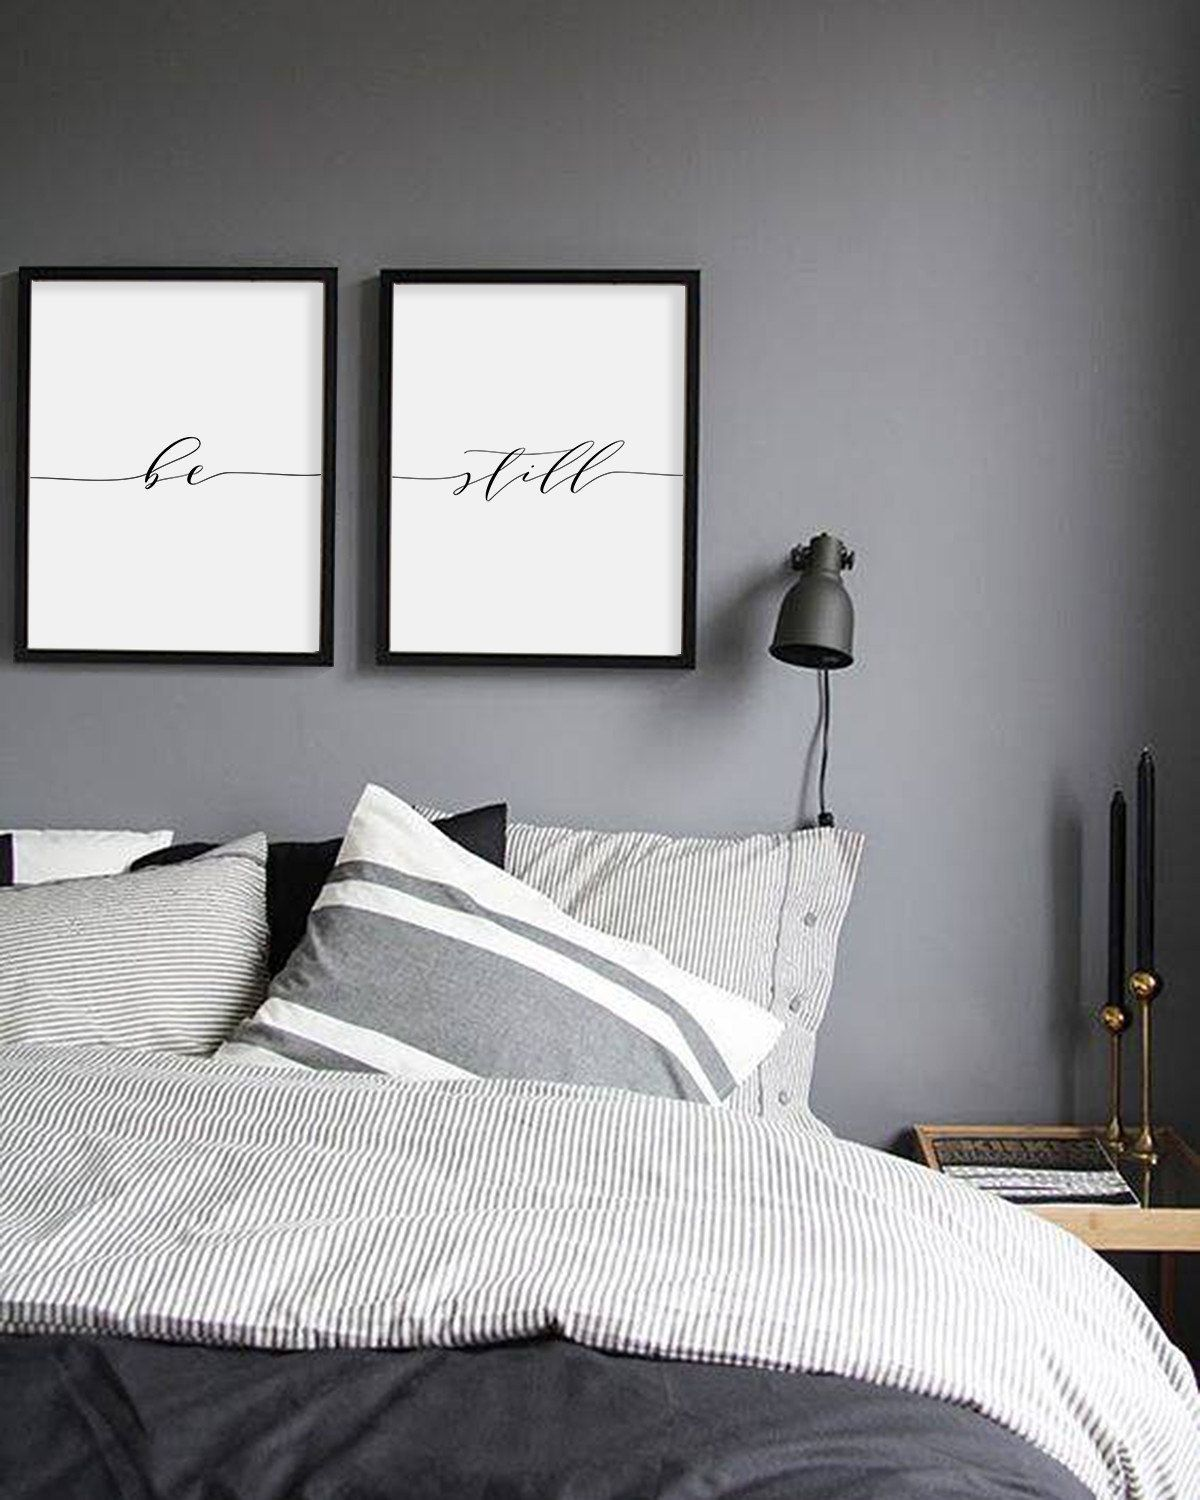 Black And White Artwork For Bedroom Be Still Print Minimalist Typography Art Bedroom Print Be Still